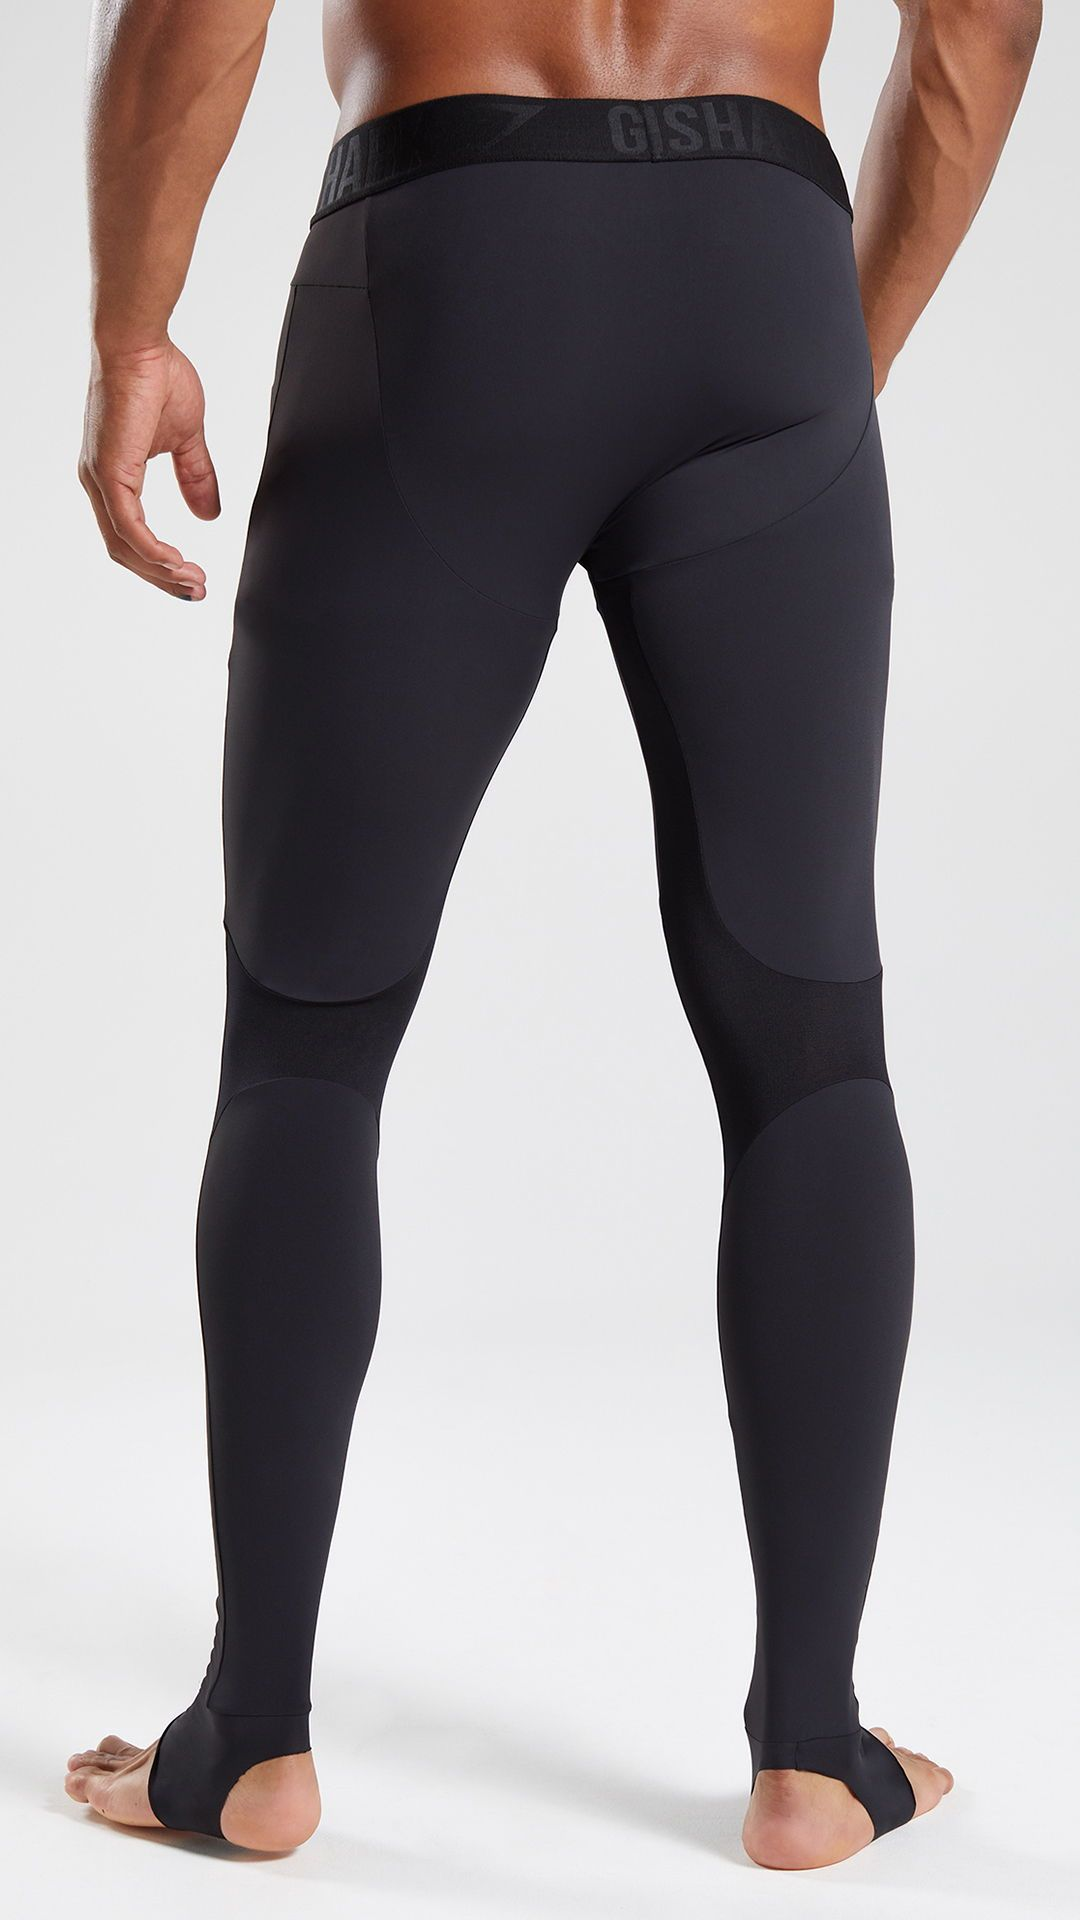 63fee1c37fb52 The Compression Slate Legging - Black. #Gymshark #Menswear #Workout #Chill  #Fitness #Outfit